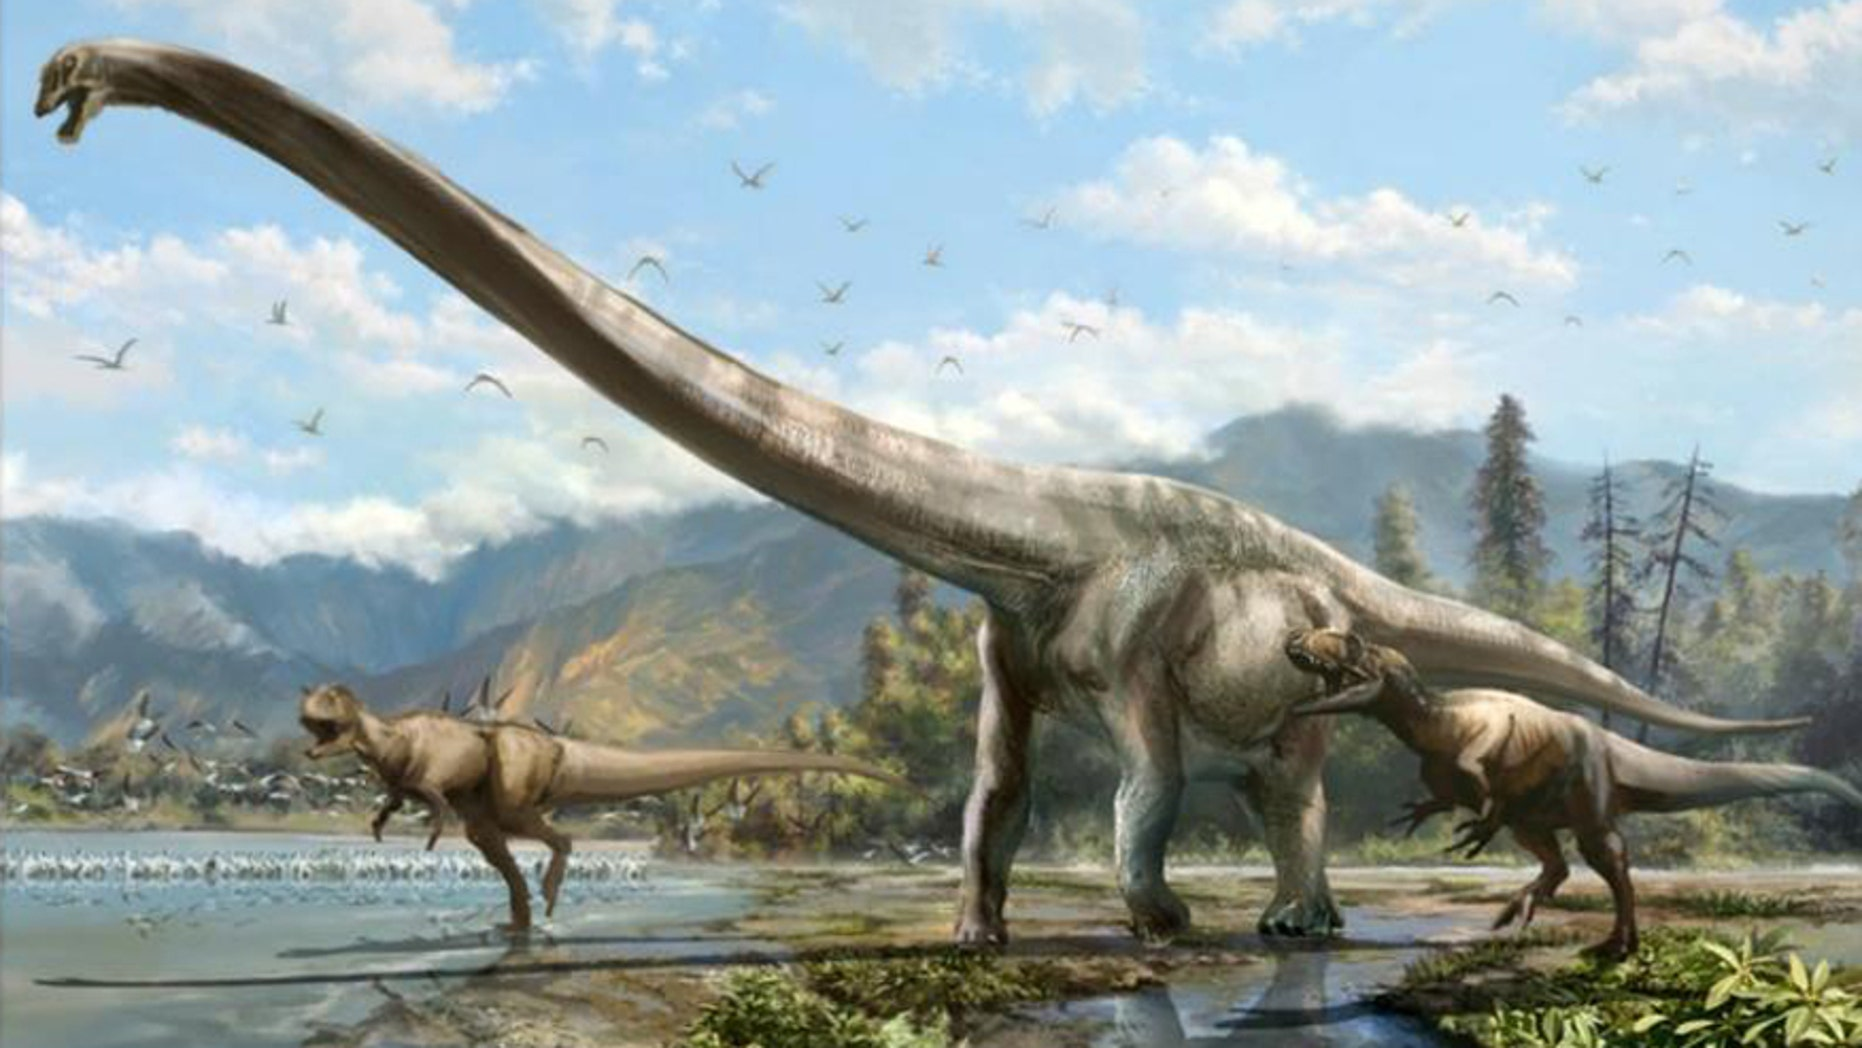 Artist's conception of Qijianglong, chased by two carnivorous dinosaurs in southern China 160 million years ago.